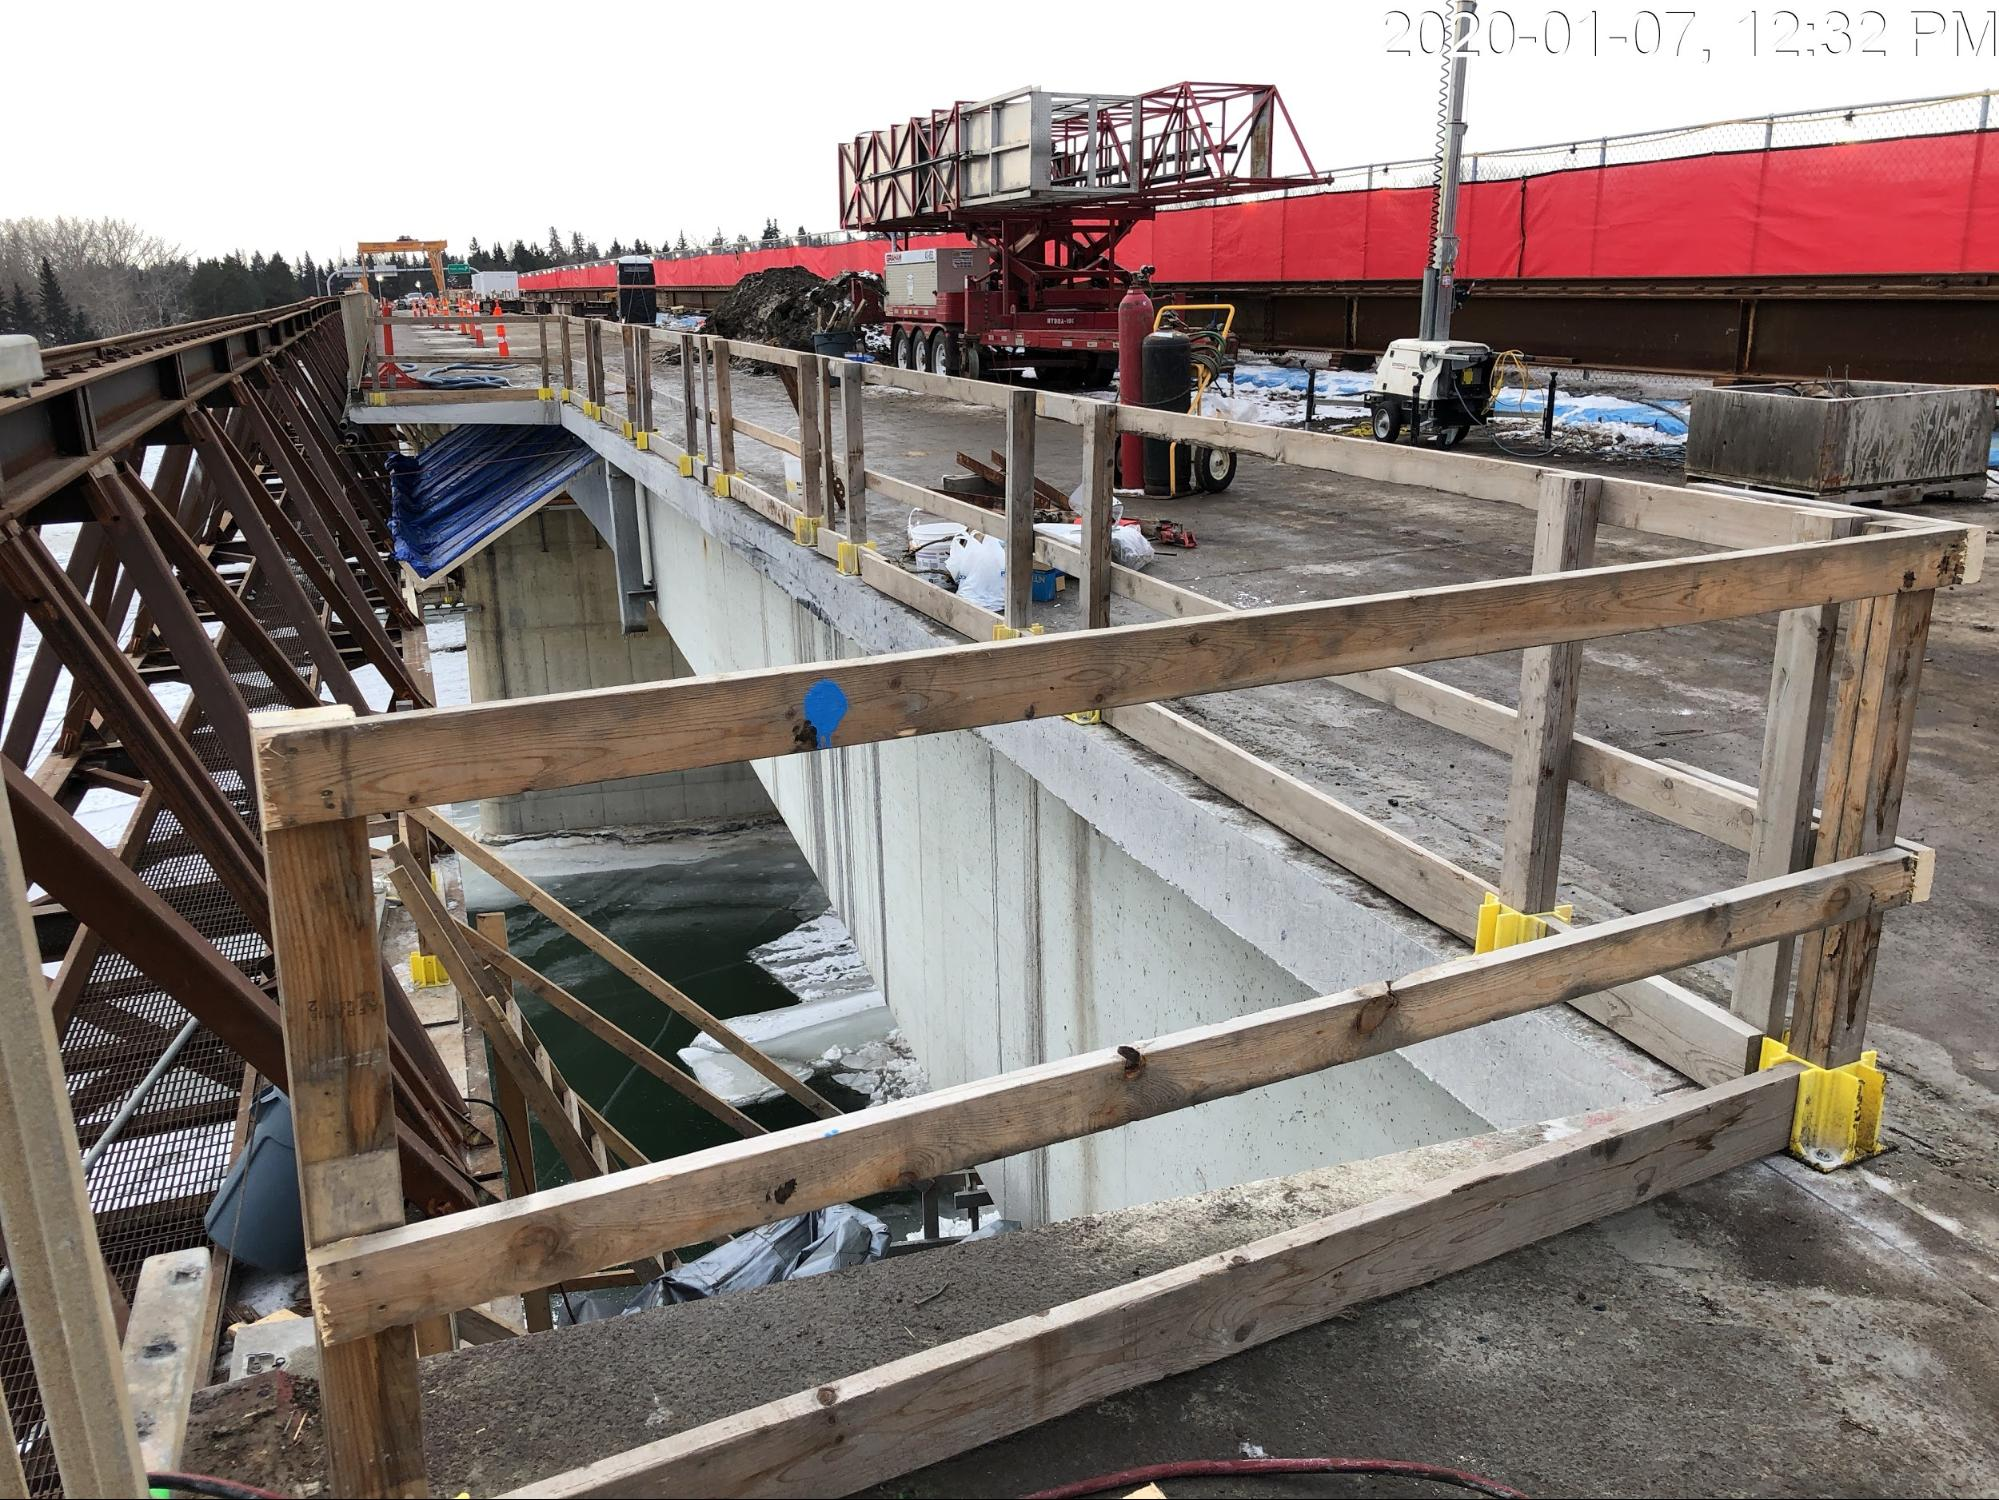 Bridge demolition work requires temporary SUP closure. Here's why.